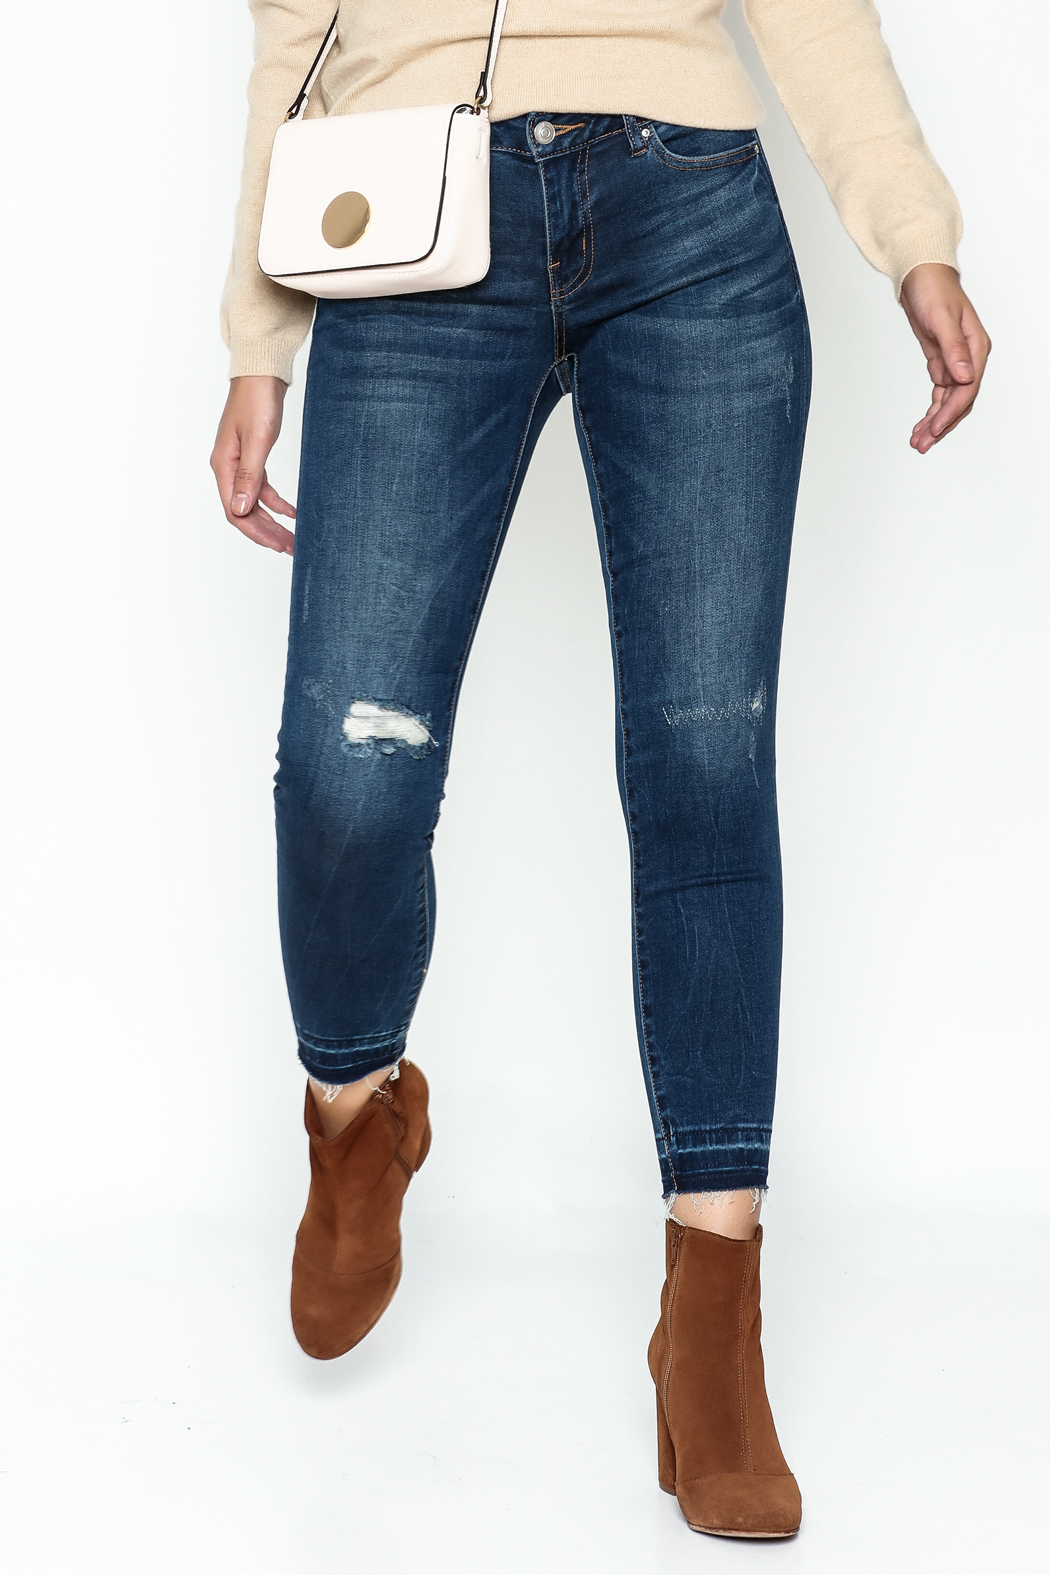 DEX Jeans Madison Distressed Cropped Jeans - Main Image